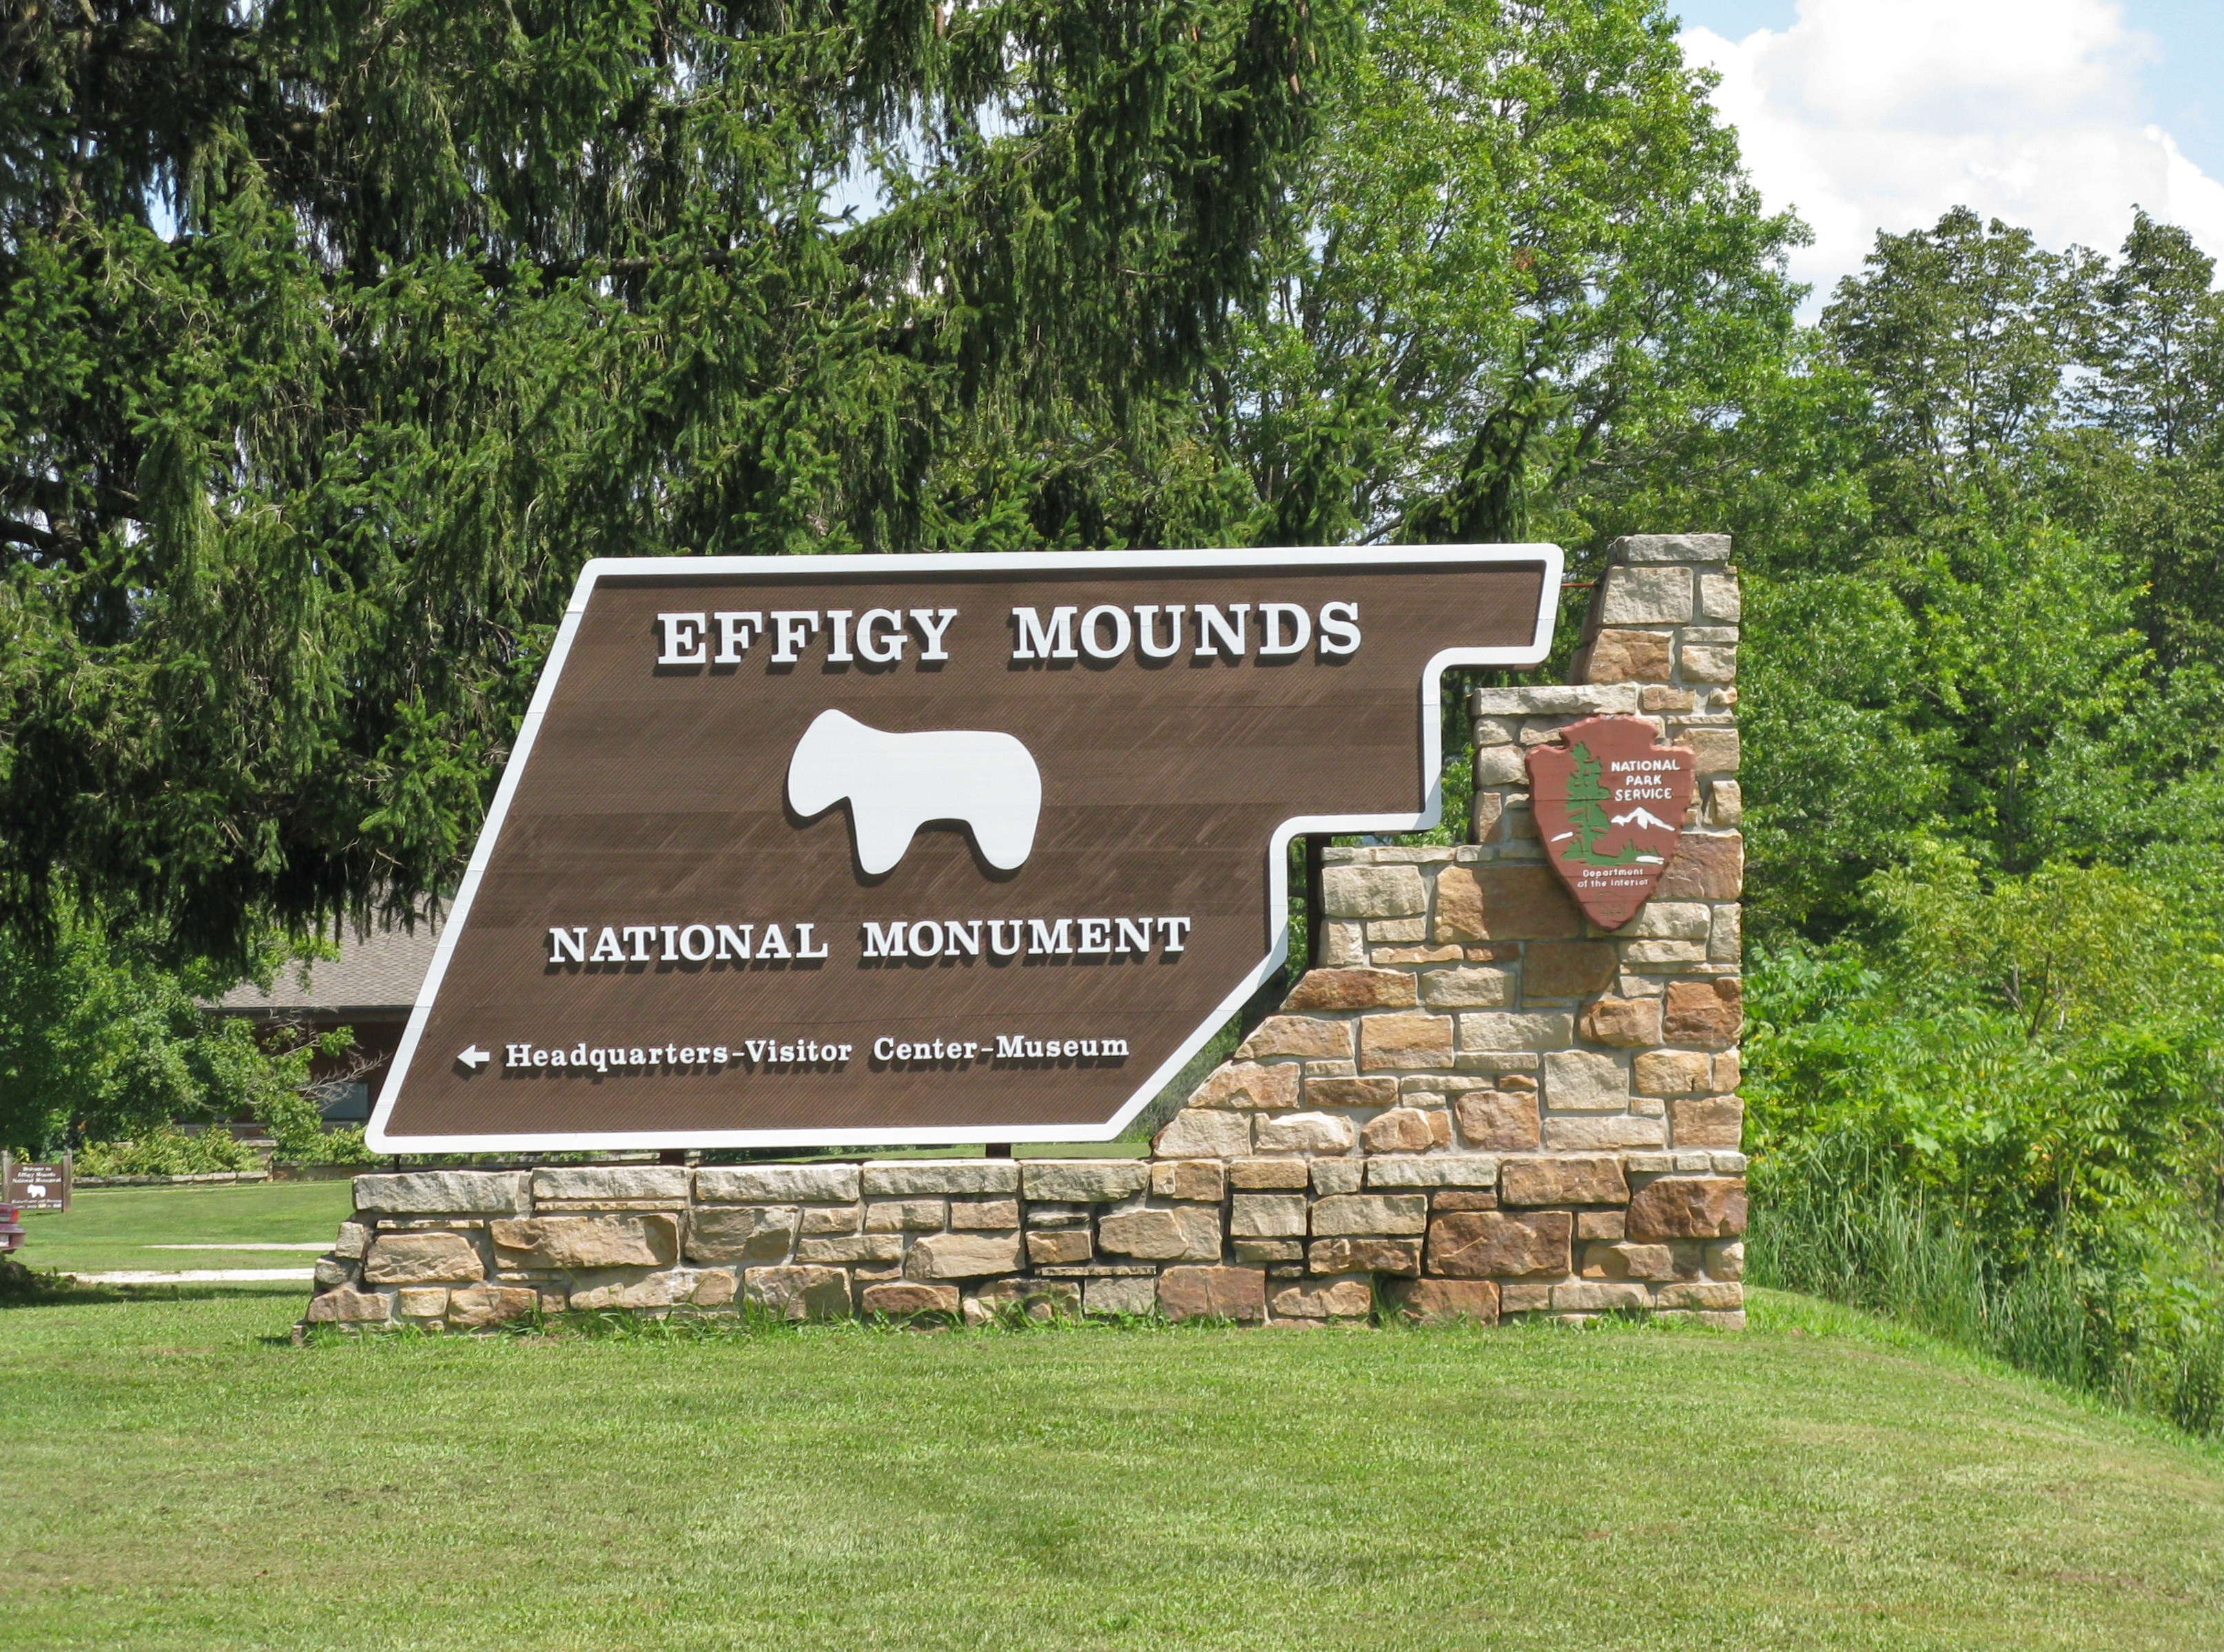 Effigy mounds national monument photo gallery